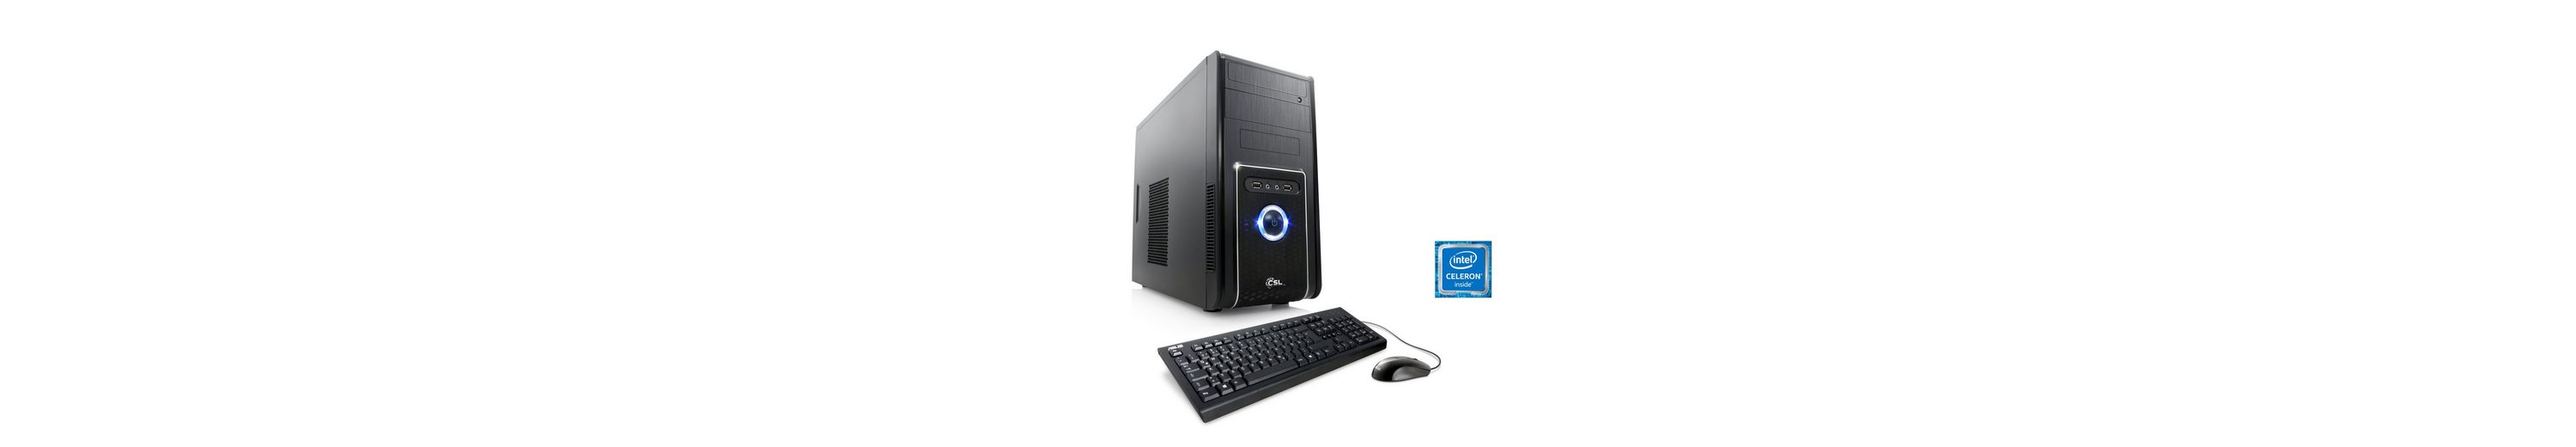 CSL Office PC | Intel QuadCore | Intel HD Graphic | 8 GB RAM »Speed T1841 Windows 10 Home«